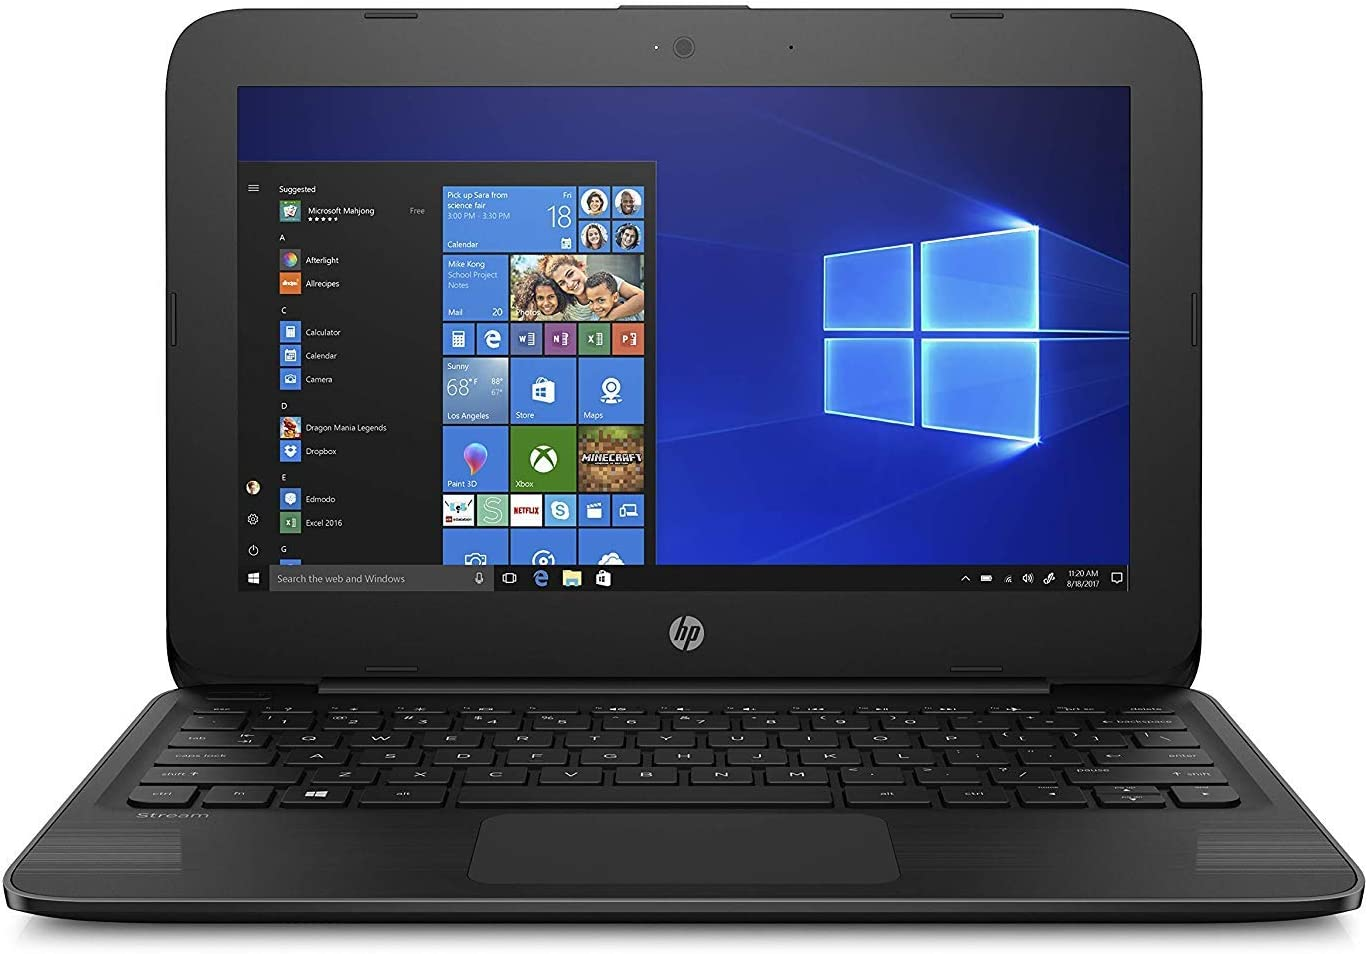 "HP Stream 11-ah117wm 11.6"" Netbook, Intel Celeron N4000, 4GB RAM, 32GB Flash Memory 4ND15UA#ABA"